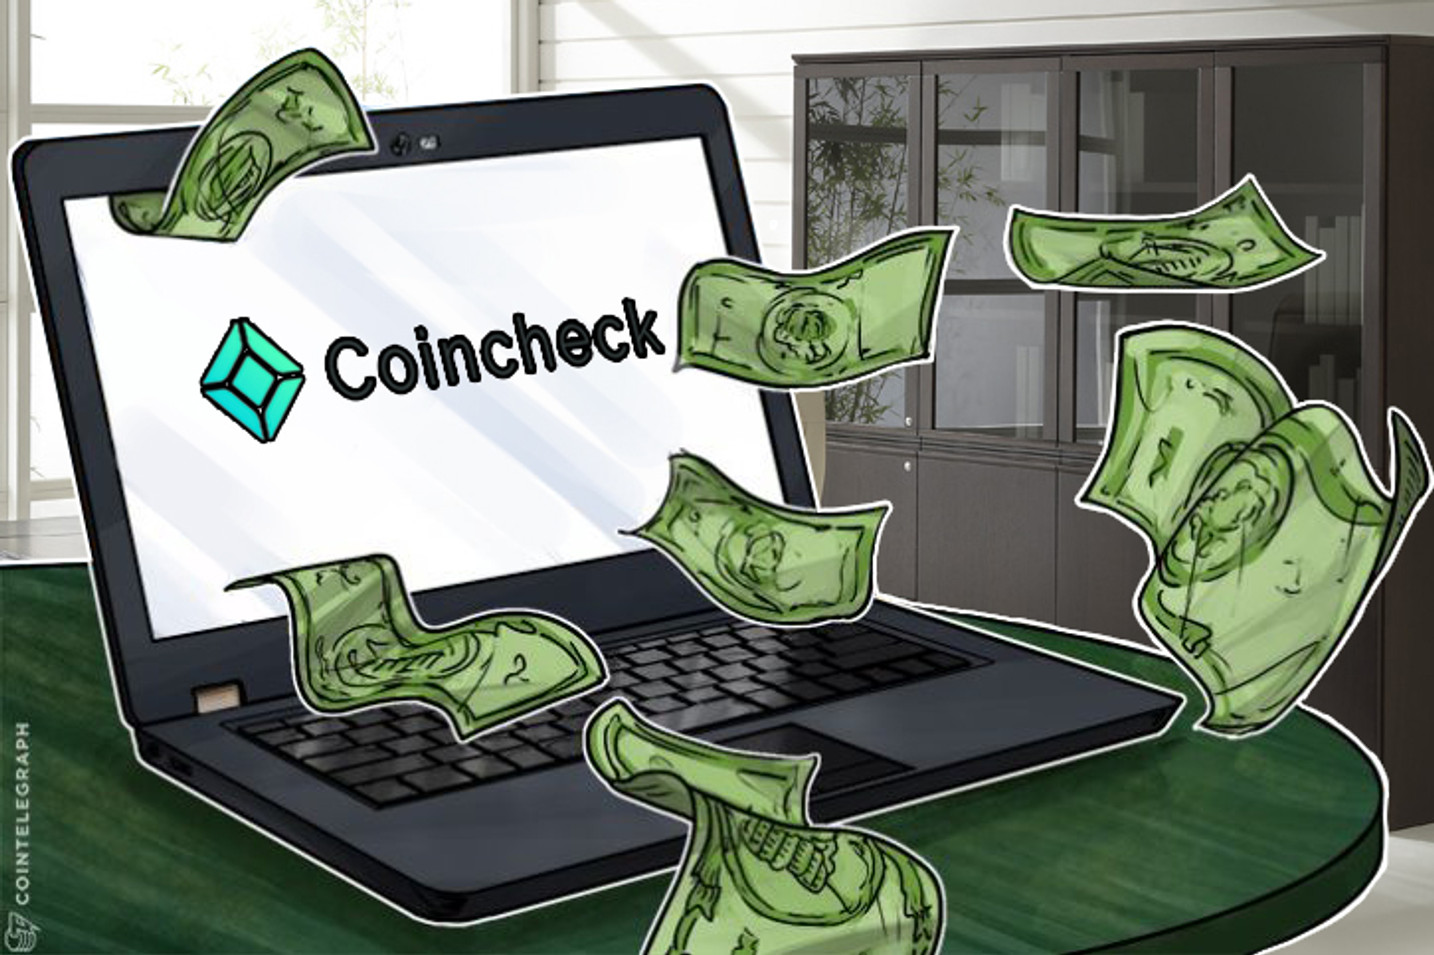 Hacked Coincheck Exchange Will Refund Users, Resume Trading 'Next Week', Says CEO